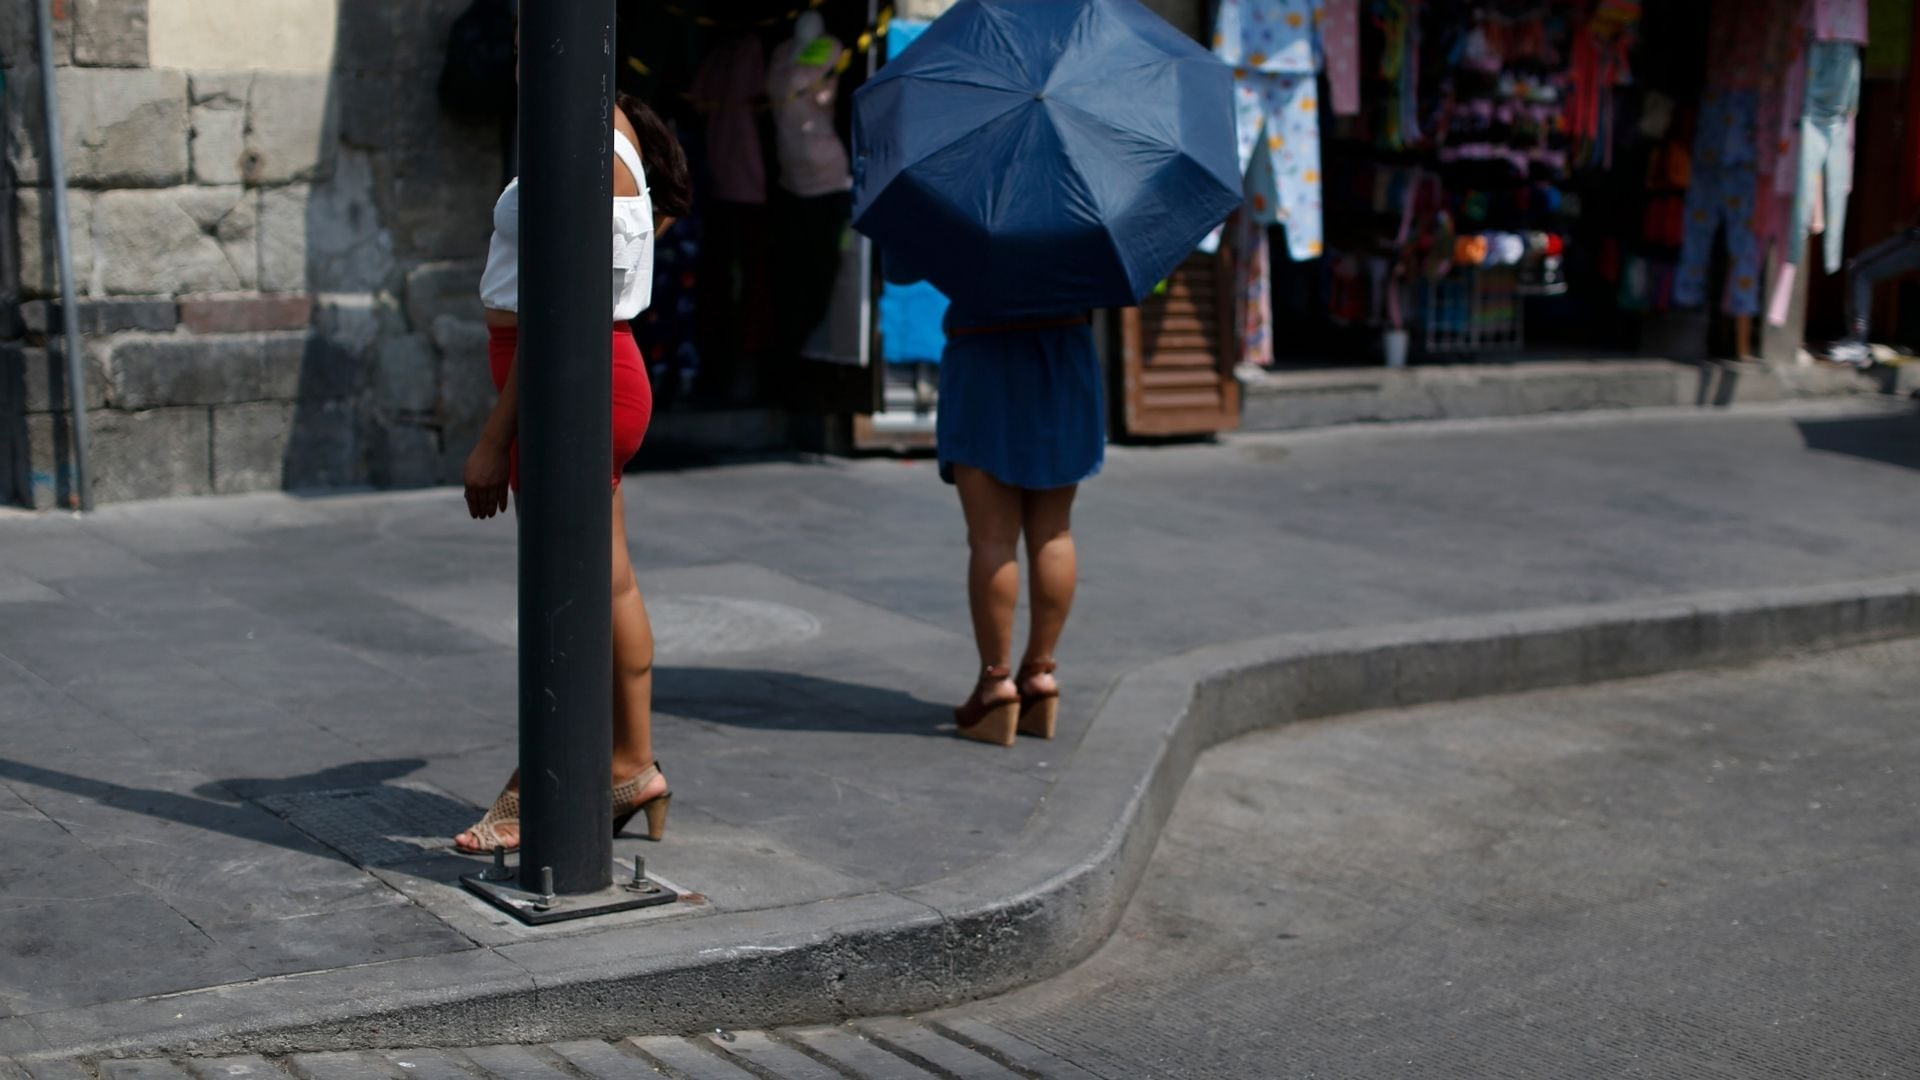 In Mexico, hunger and unemployment force many former sex workers back into trade amid COVID-19 pandemic